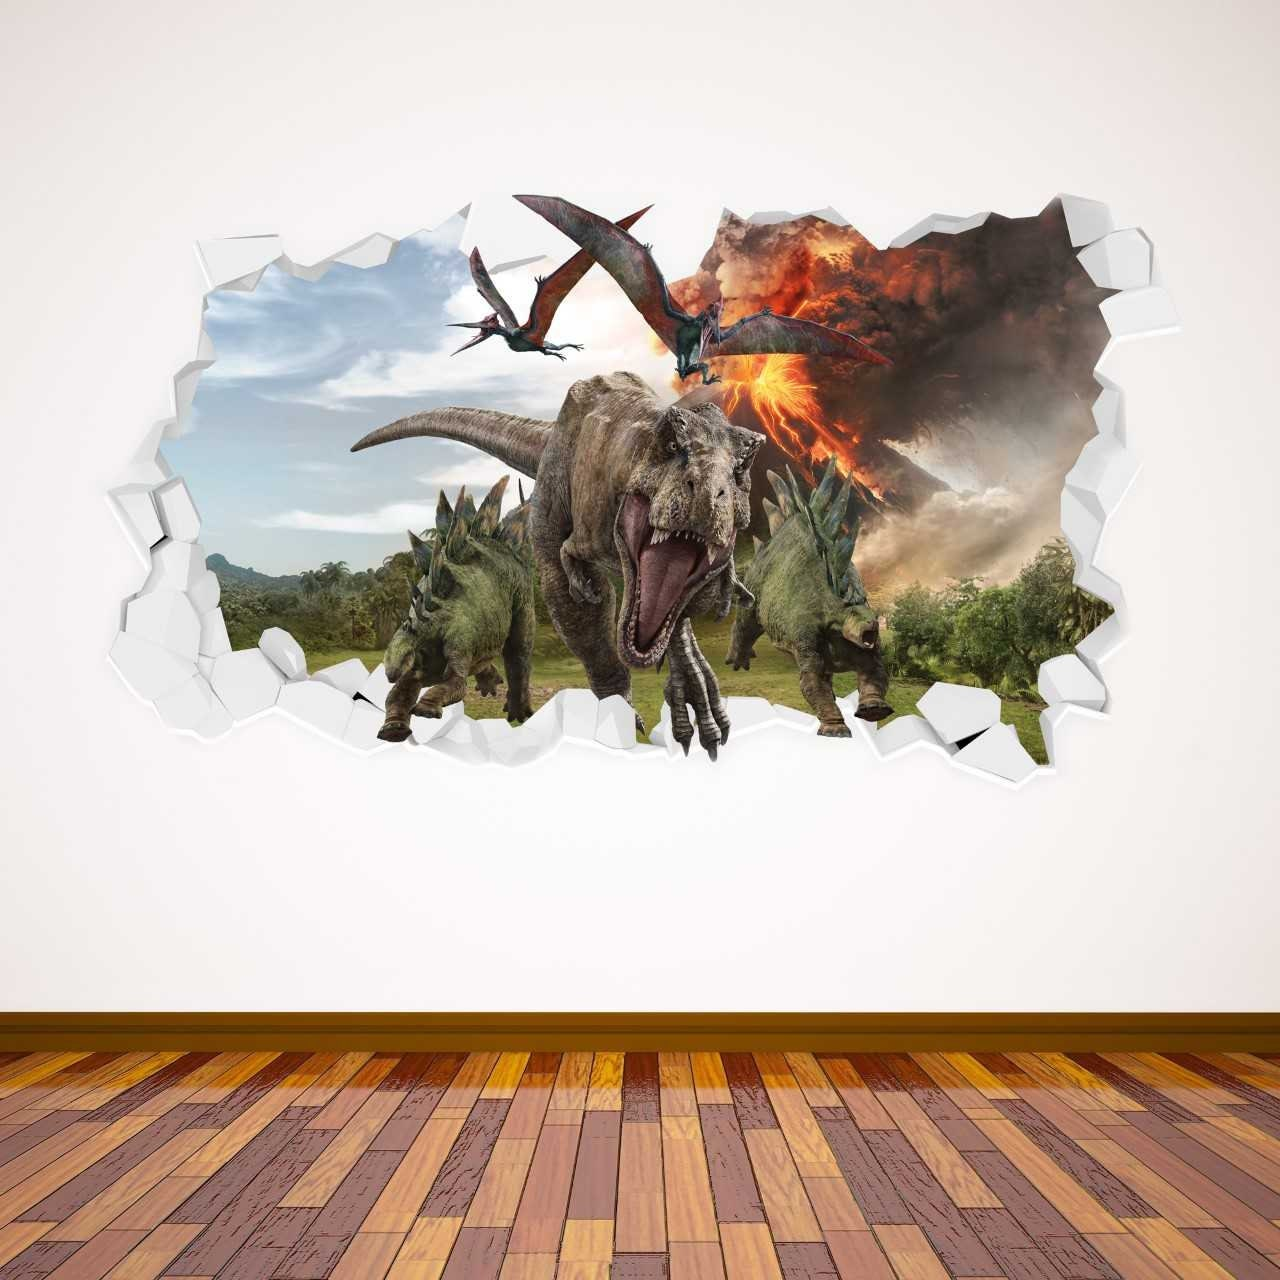 VOLCANO DINOSAURS WALL STICKER DECAL jurassic wall mural NURSERY quote d6